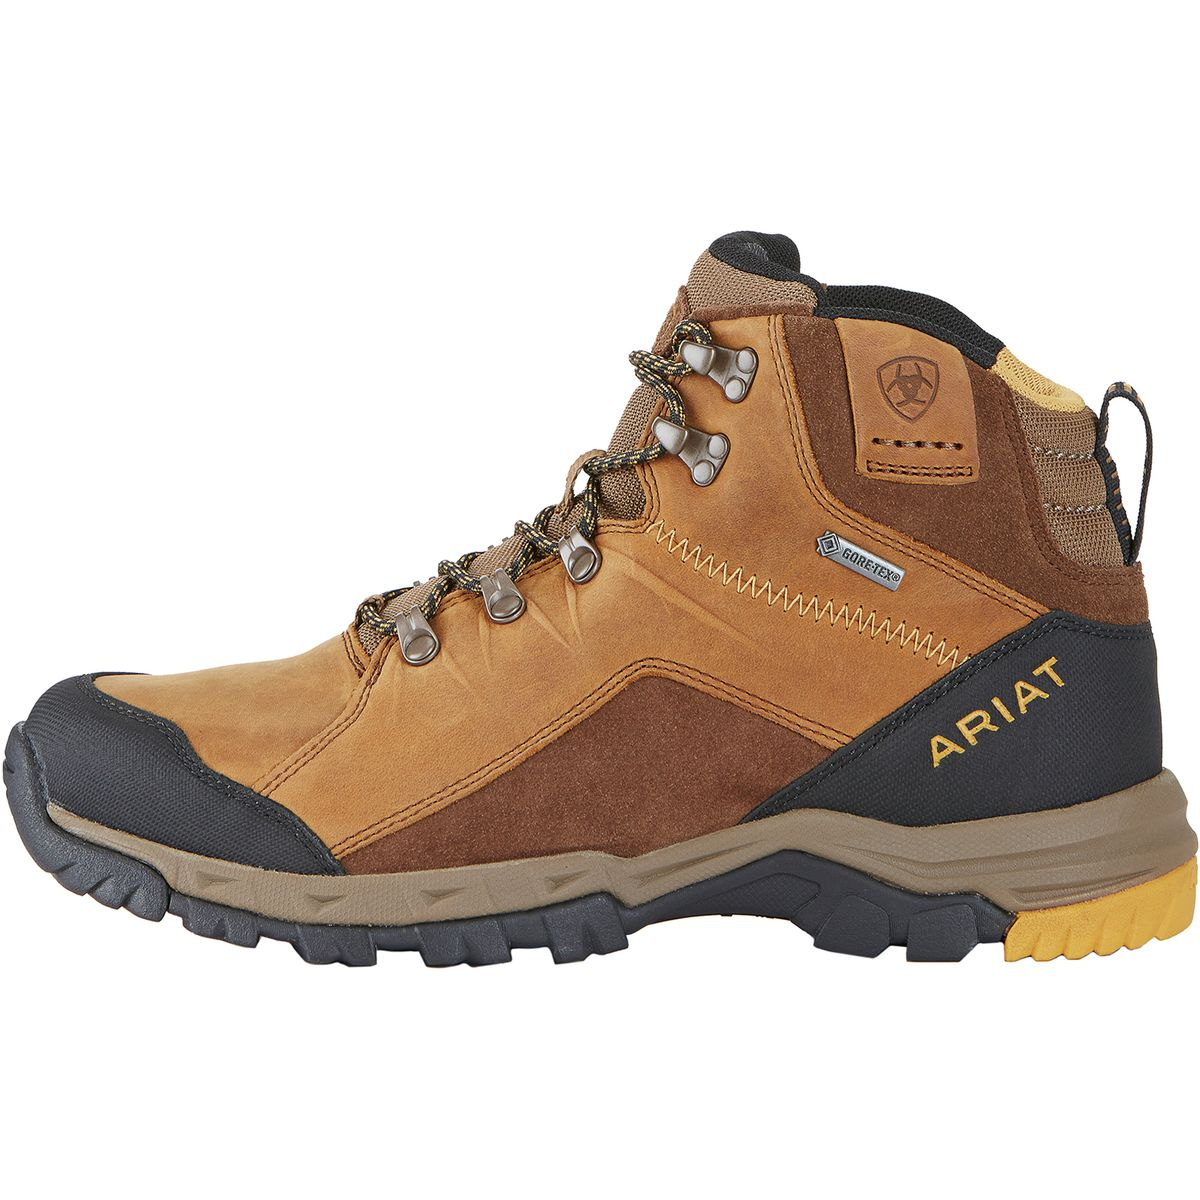 Ariat Hiking Boots p9yLoFQf